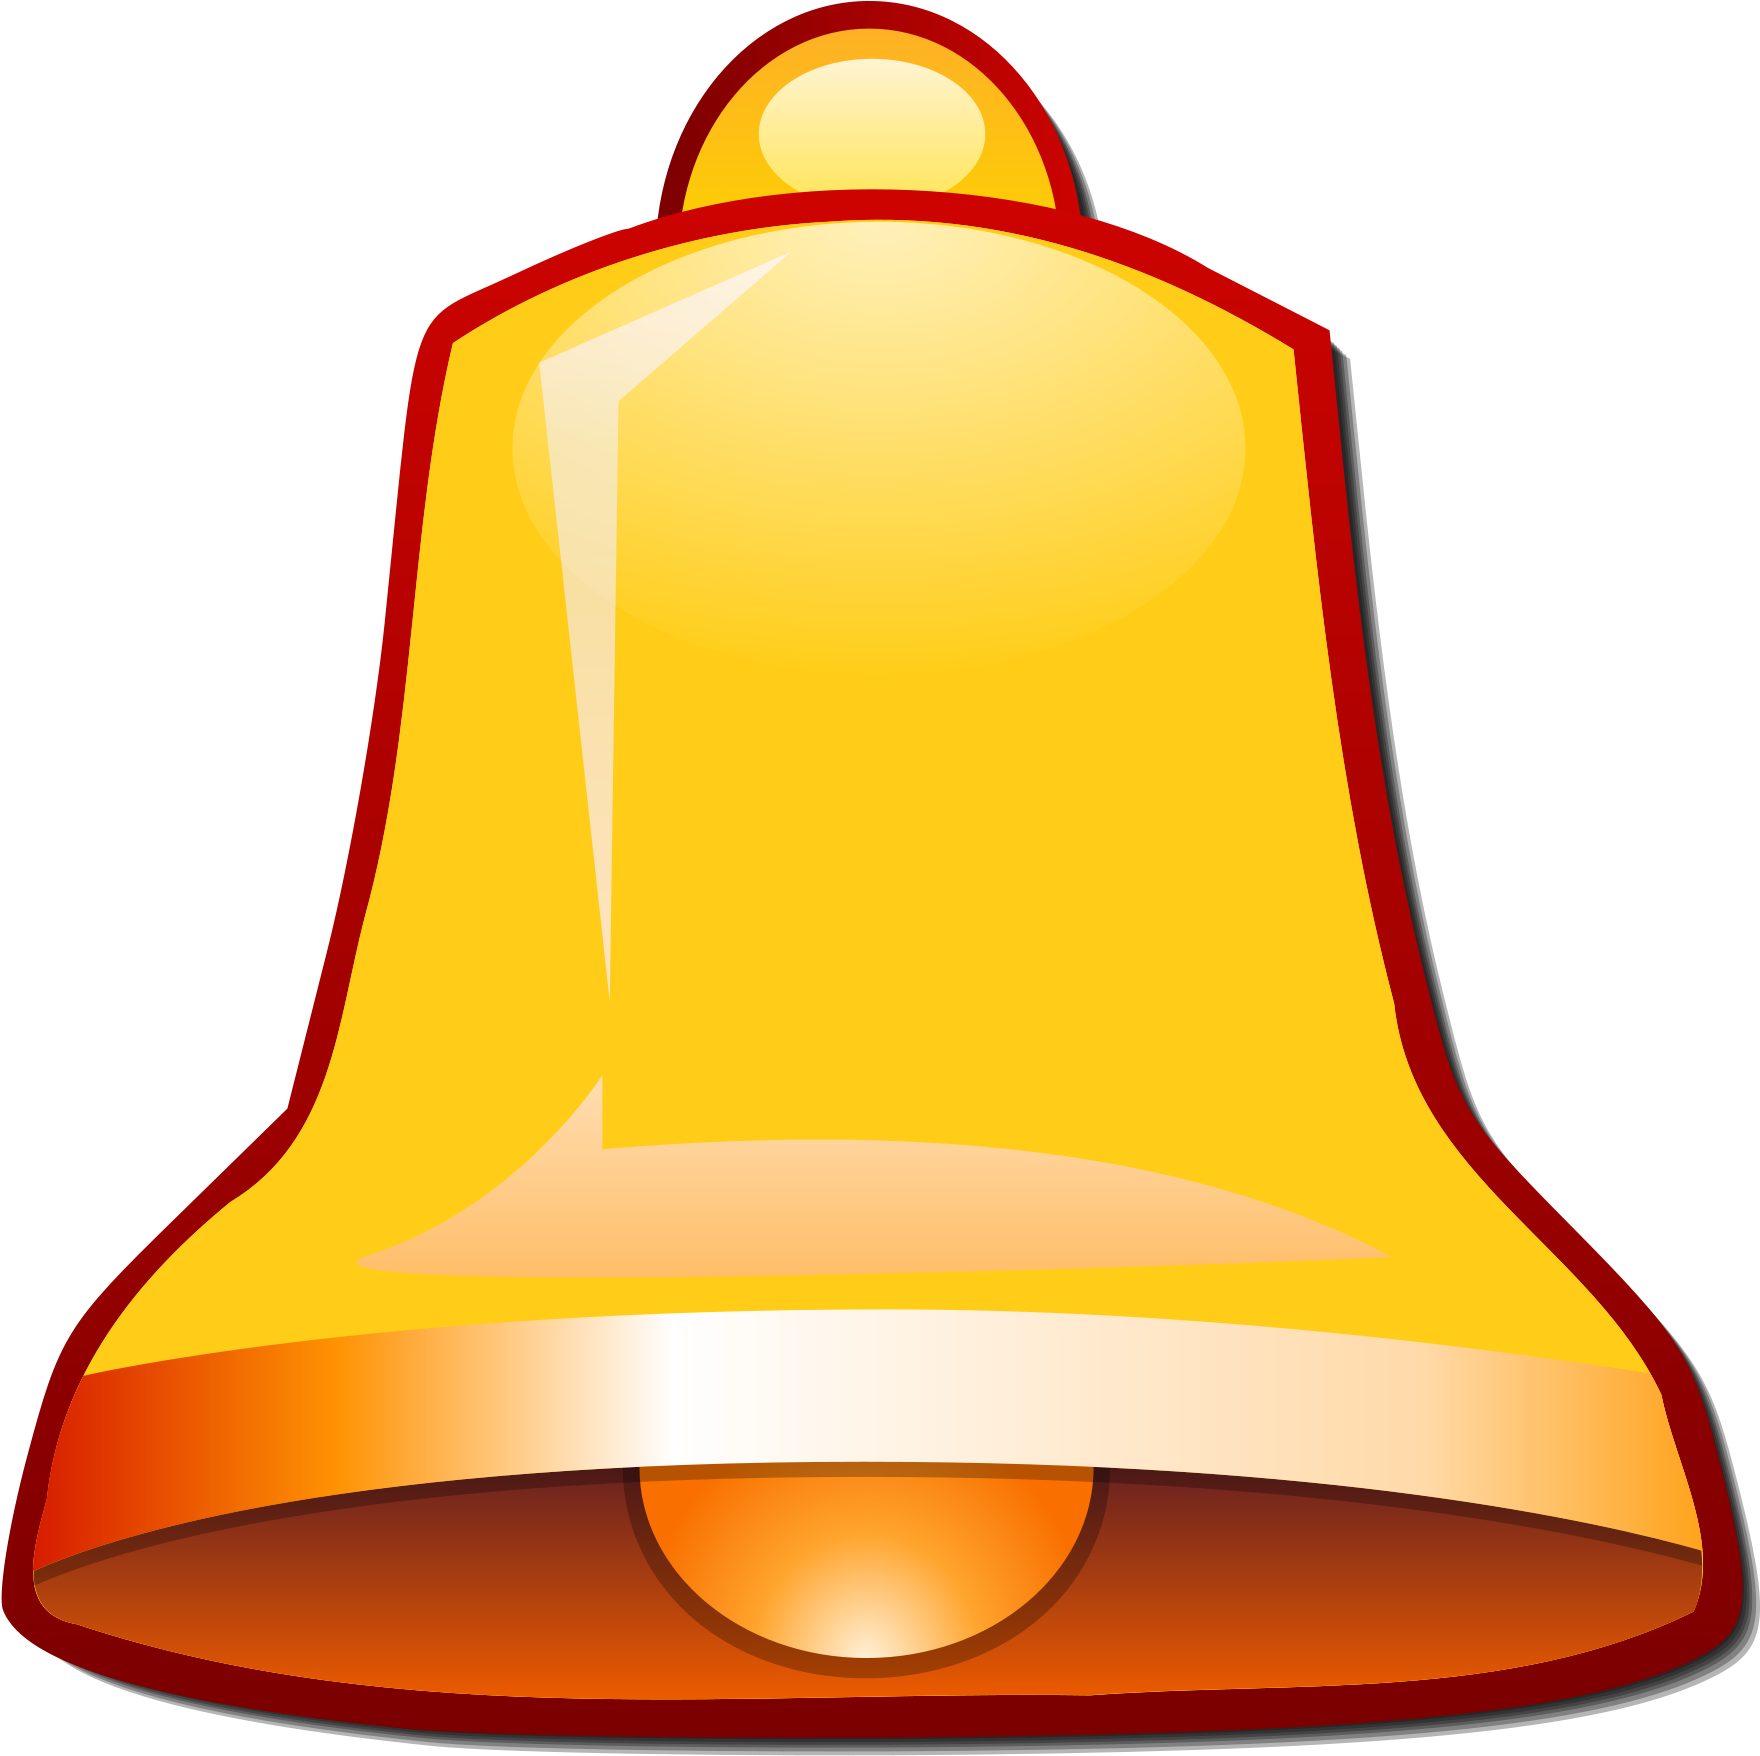 YouTube Bell Icon PNG Transparent Image.